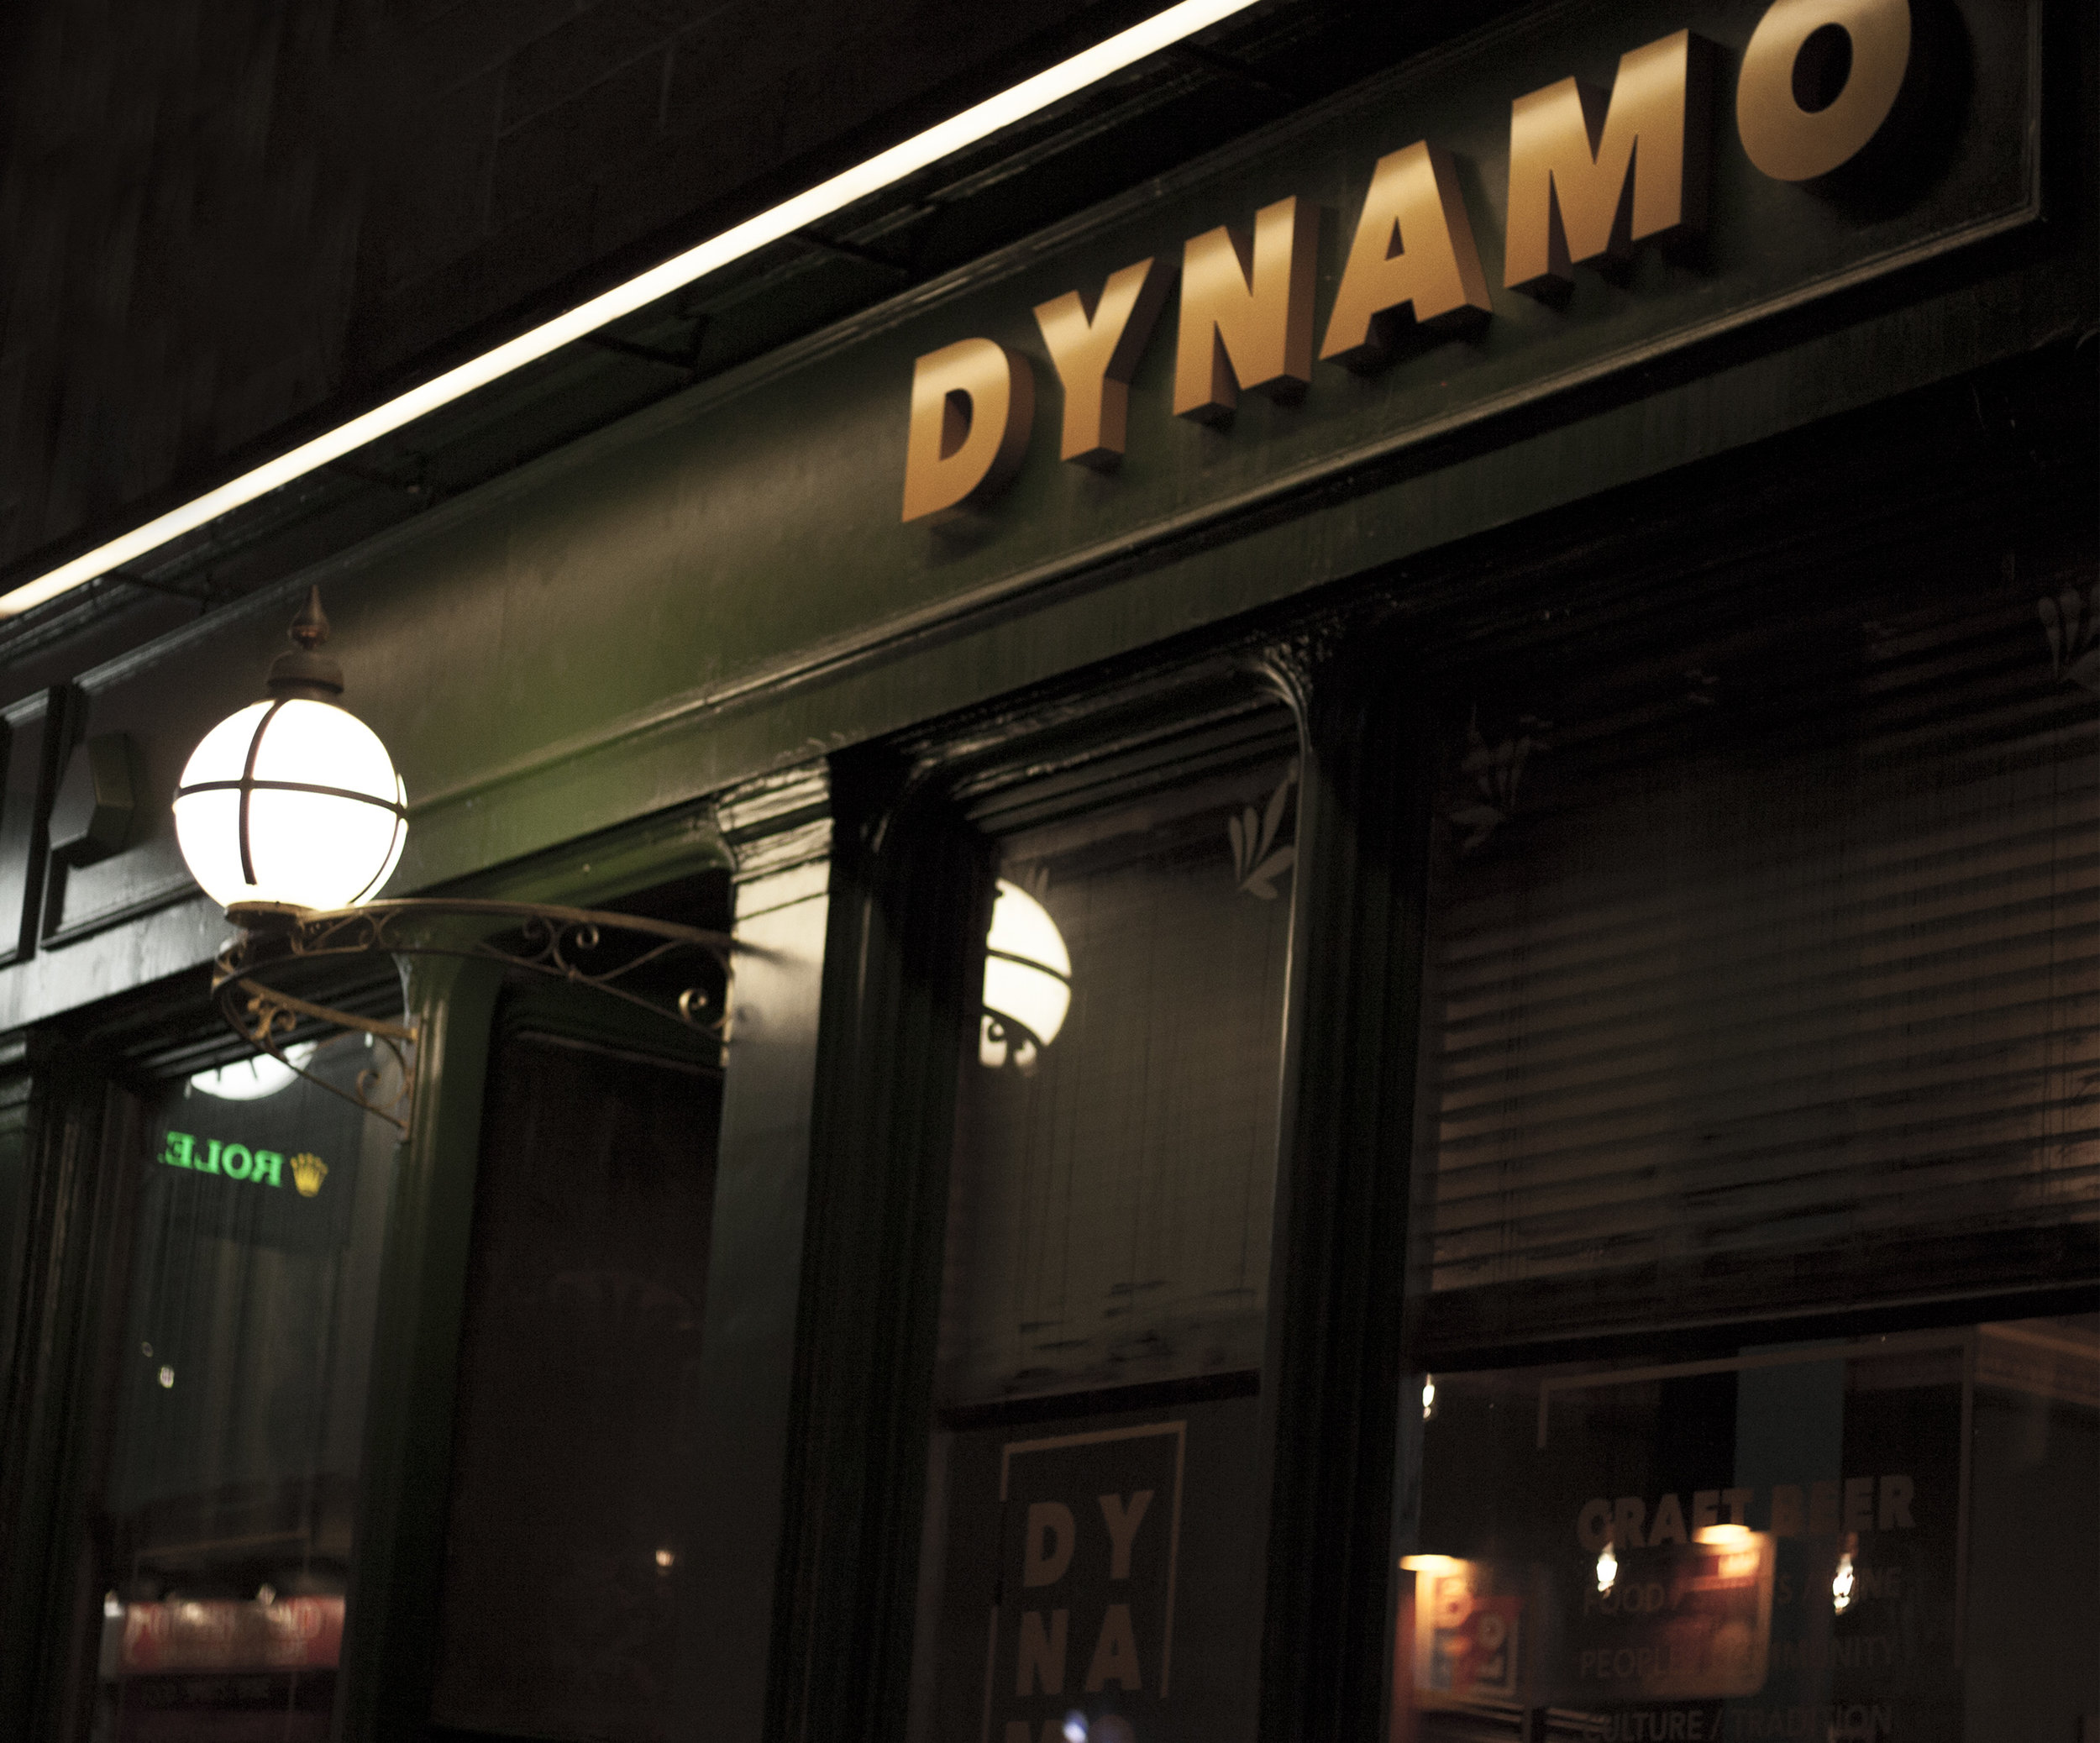 OPENED OUR FIFTH BAR DYNAMO DUNDEE. A CHARMING WEE PLACE IN THE HEART OF THE CITY CENTRE, WITH 24 TAPS POURING BEERS FROM SOME OF THE BEST BREWERS IN THE UK & AFAR. -